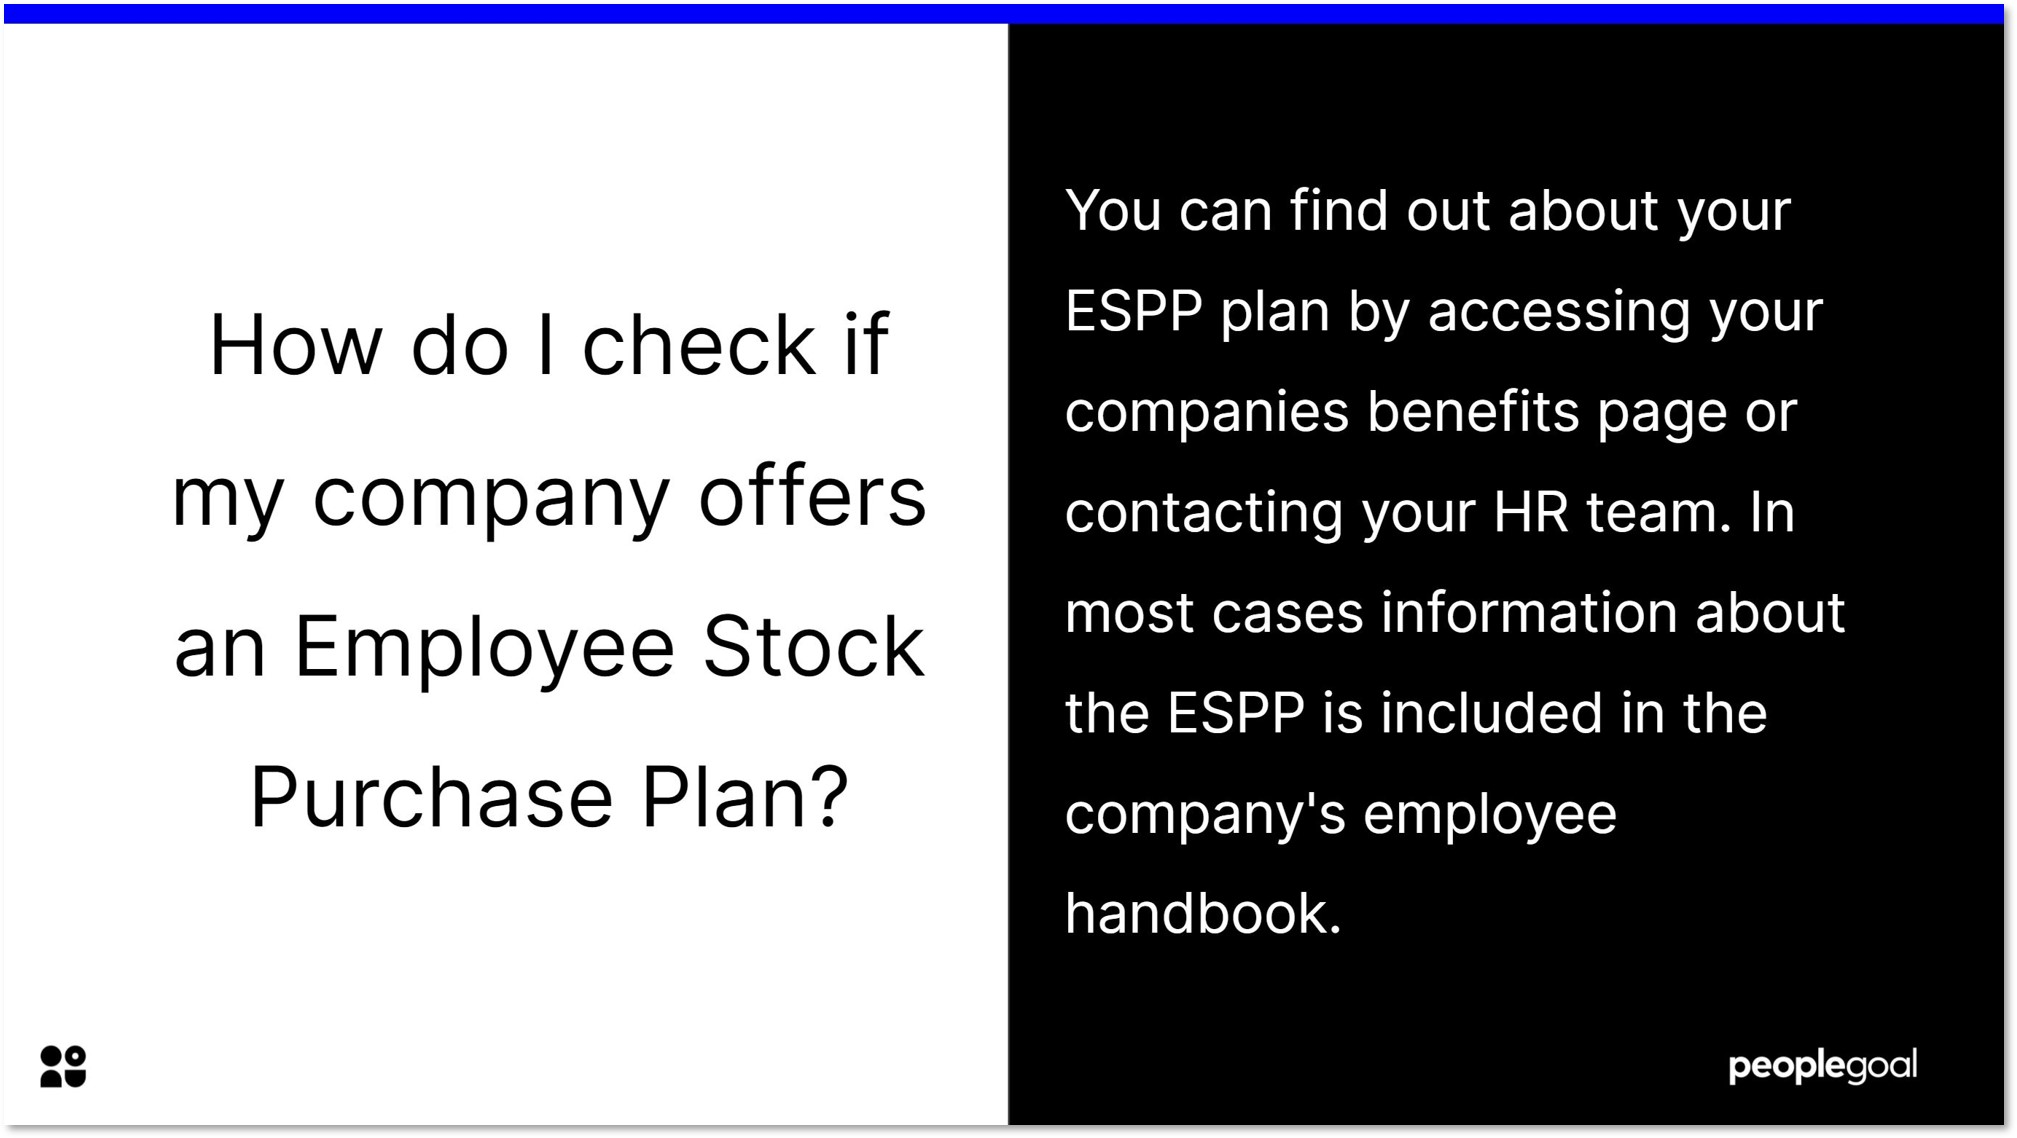 how do i check if my company offers an employee stock purchase plan